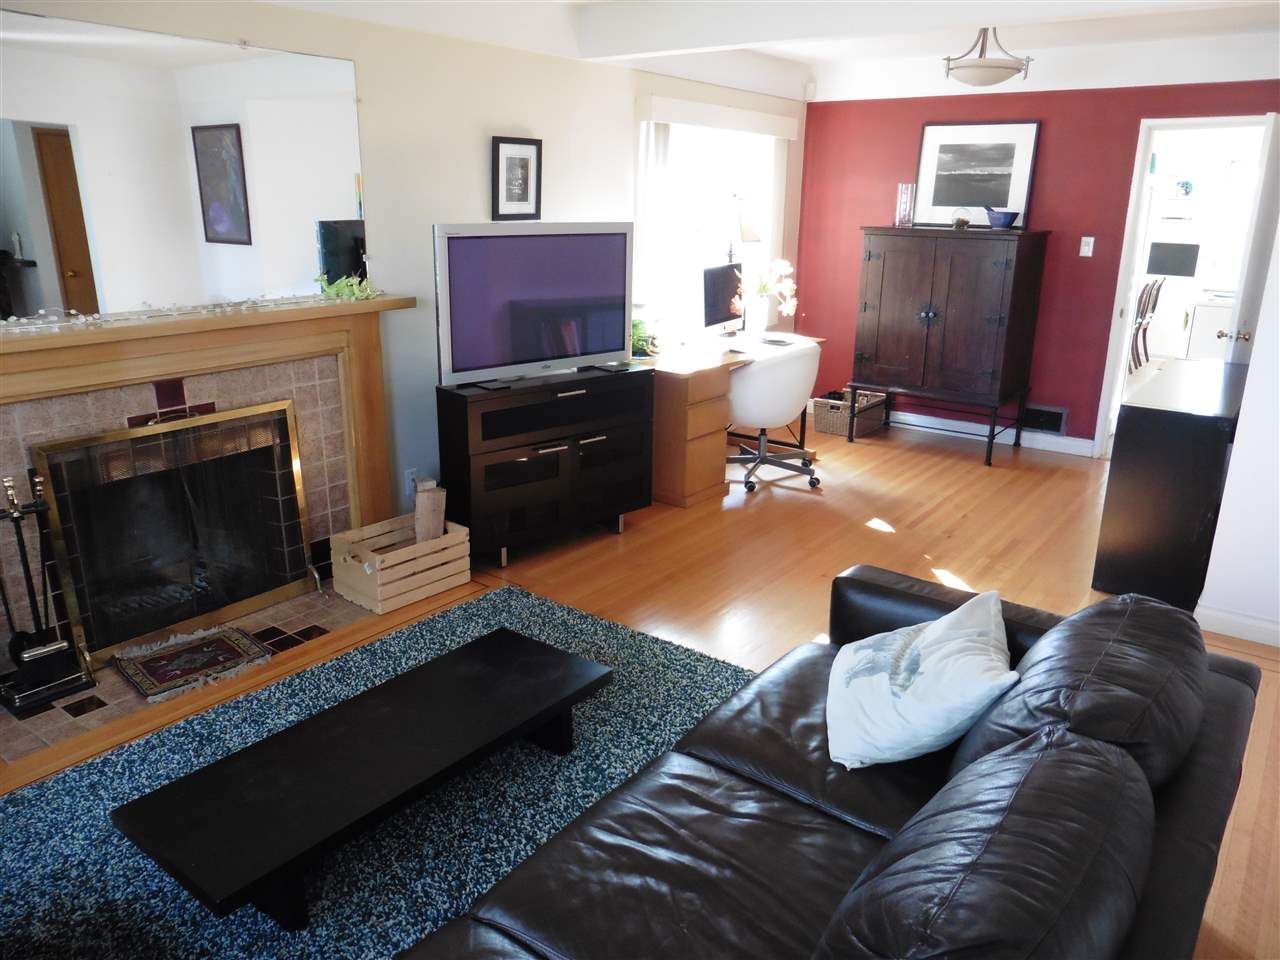 Photo 4: Photos: 1626 E 56TH Avenue in Vancouver: Fraserview VE House for sale (Vancouver East)  : MLS®# R2443664